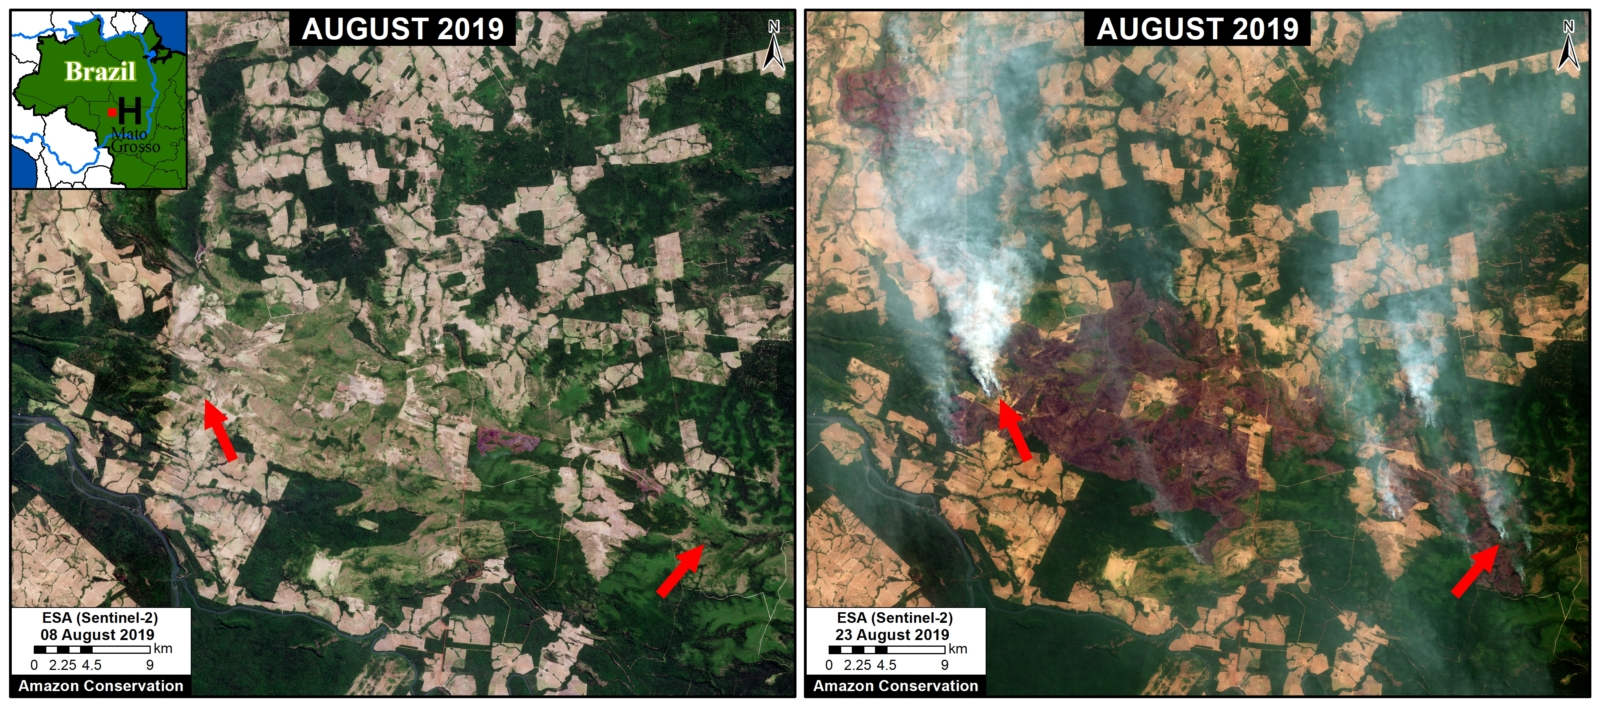 Zoom H. Fires at the agriculture-forest boundary in Mato Grosso. Data- ESA